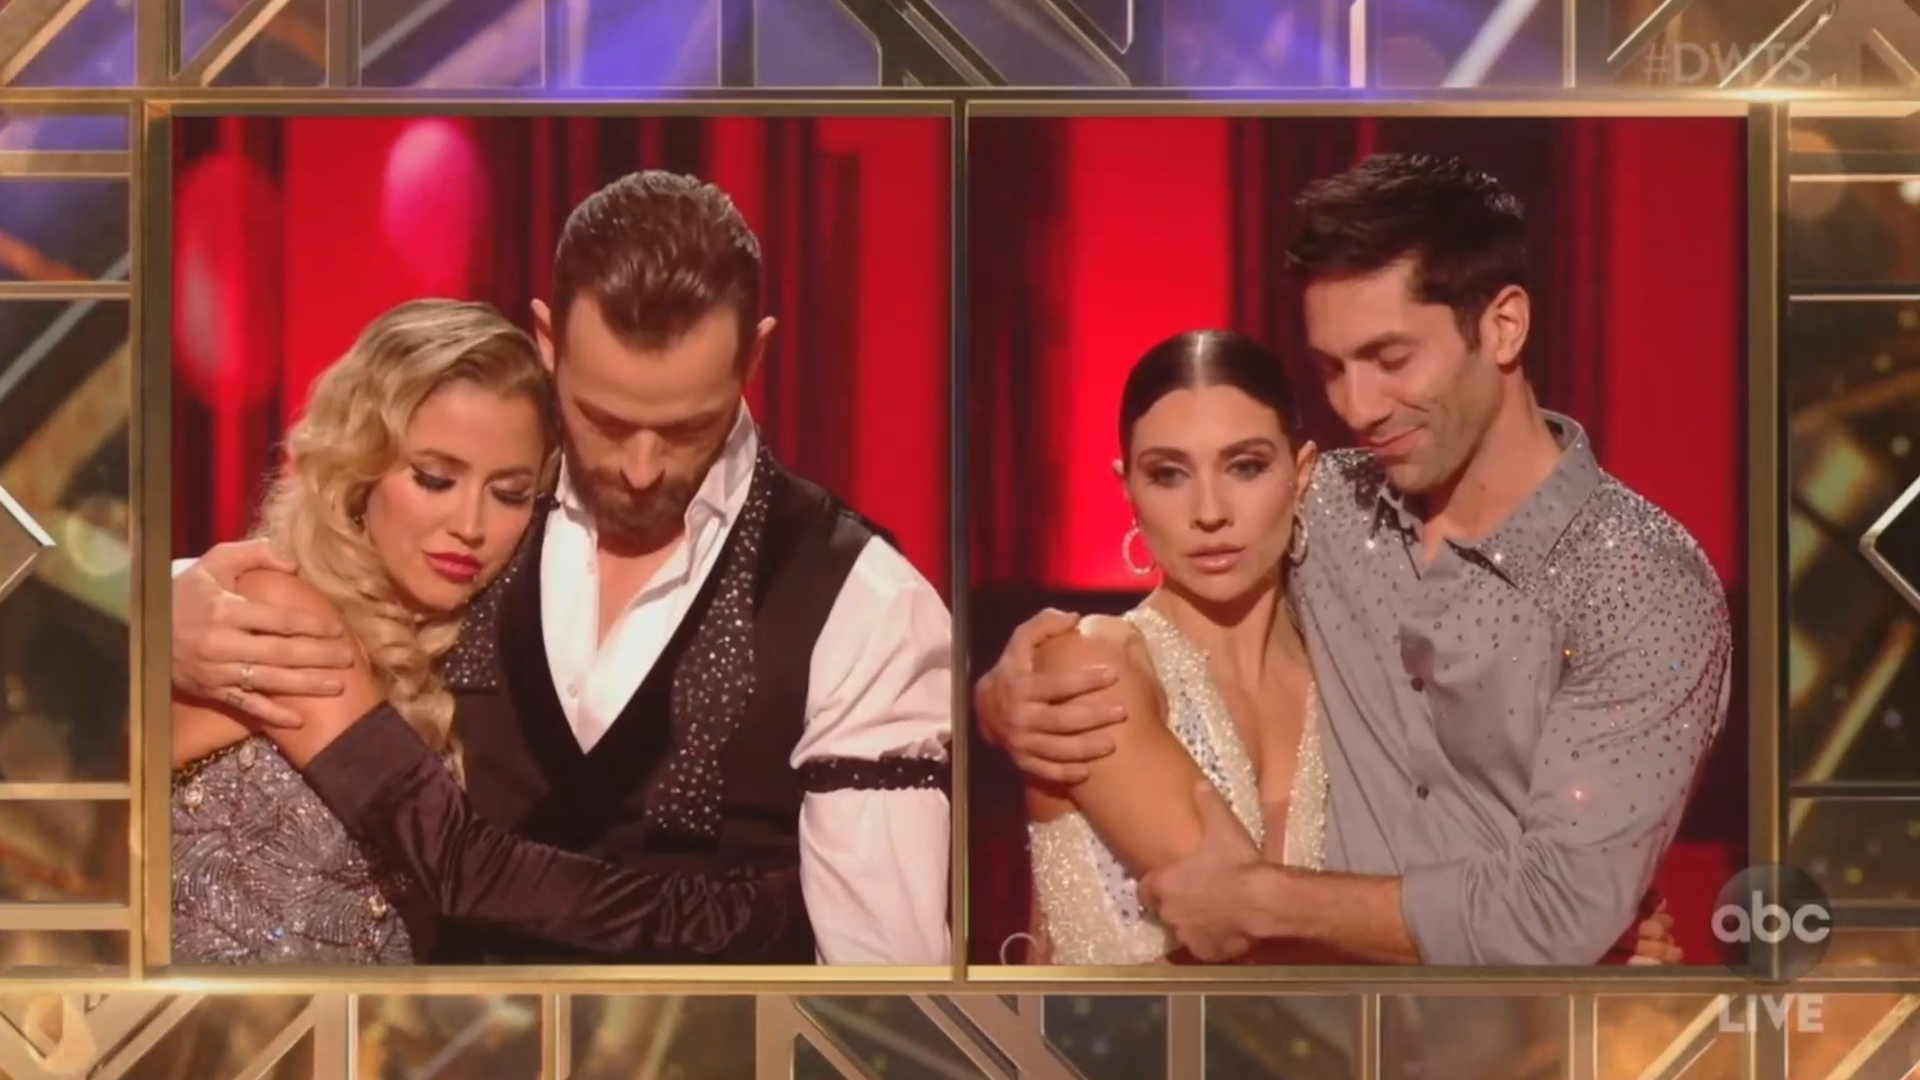 'DWTS' finale: Controversial winner, COVID restrictions, and Tyra's last-minute wardrobe